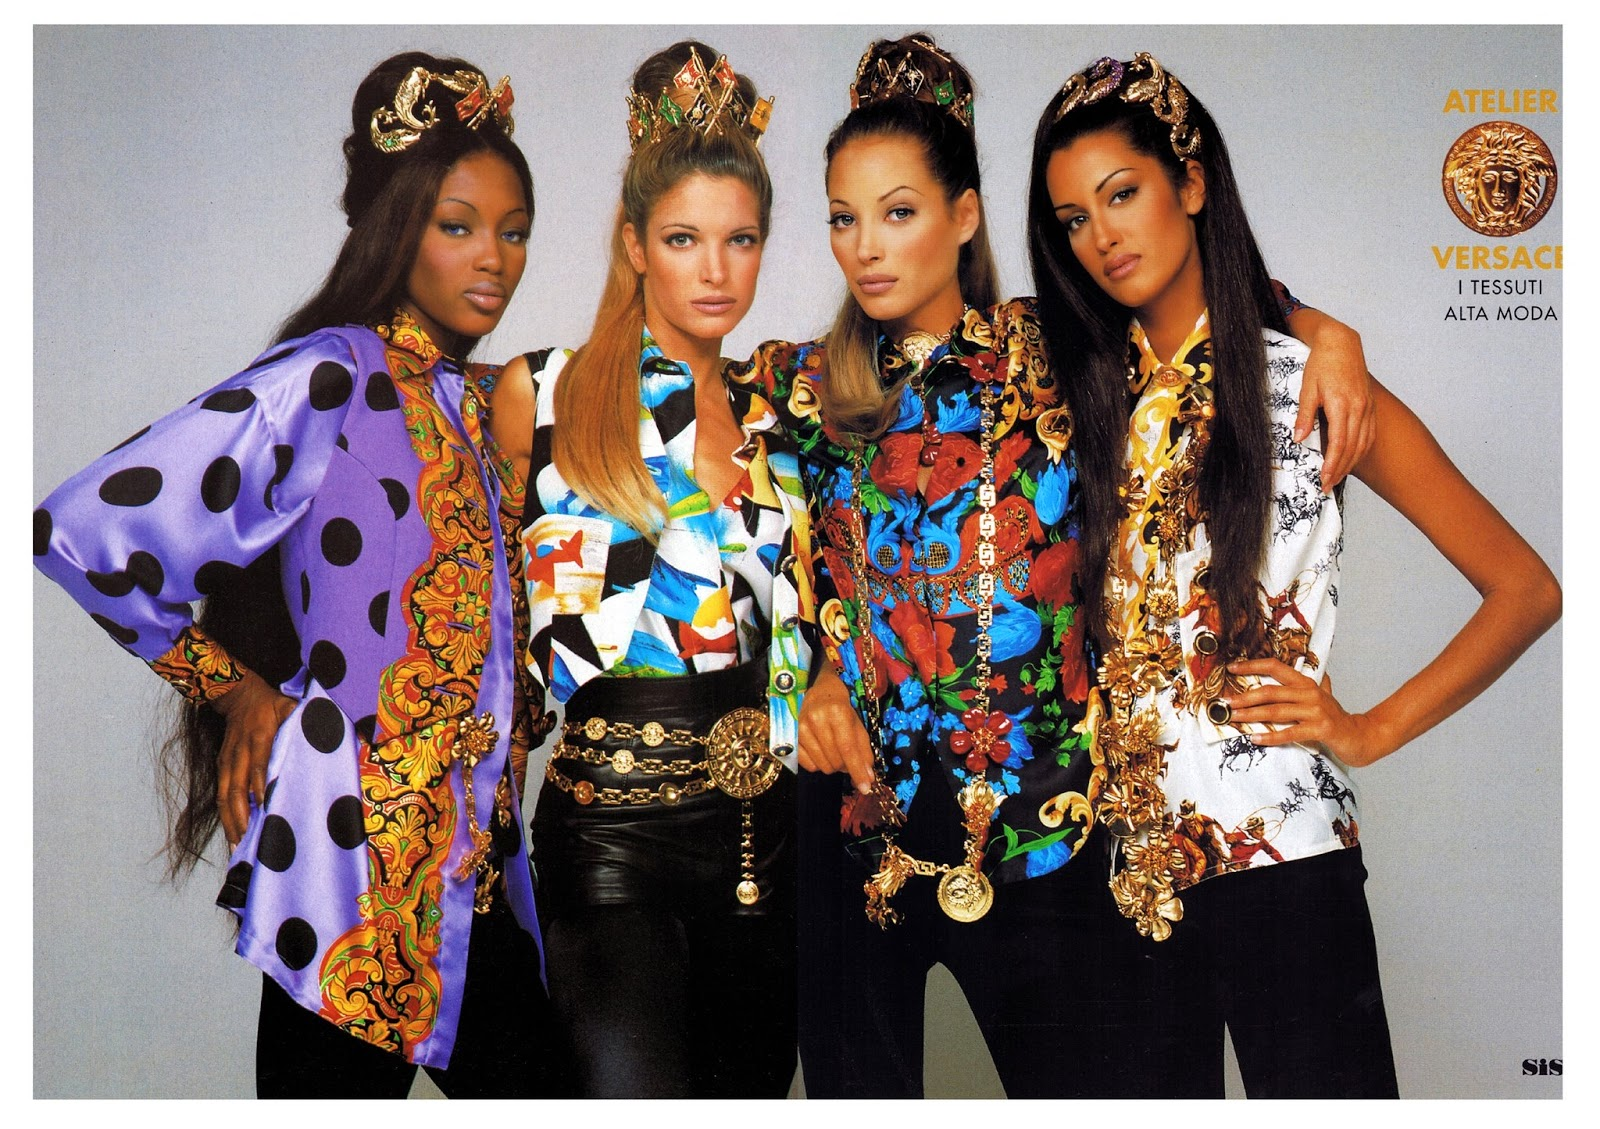 Inspirational Fashion Gianni Versace